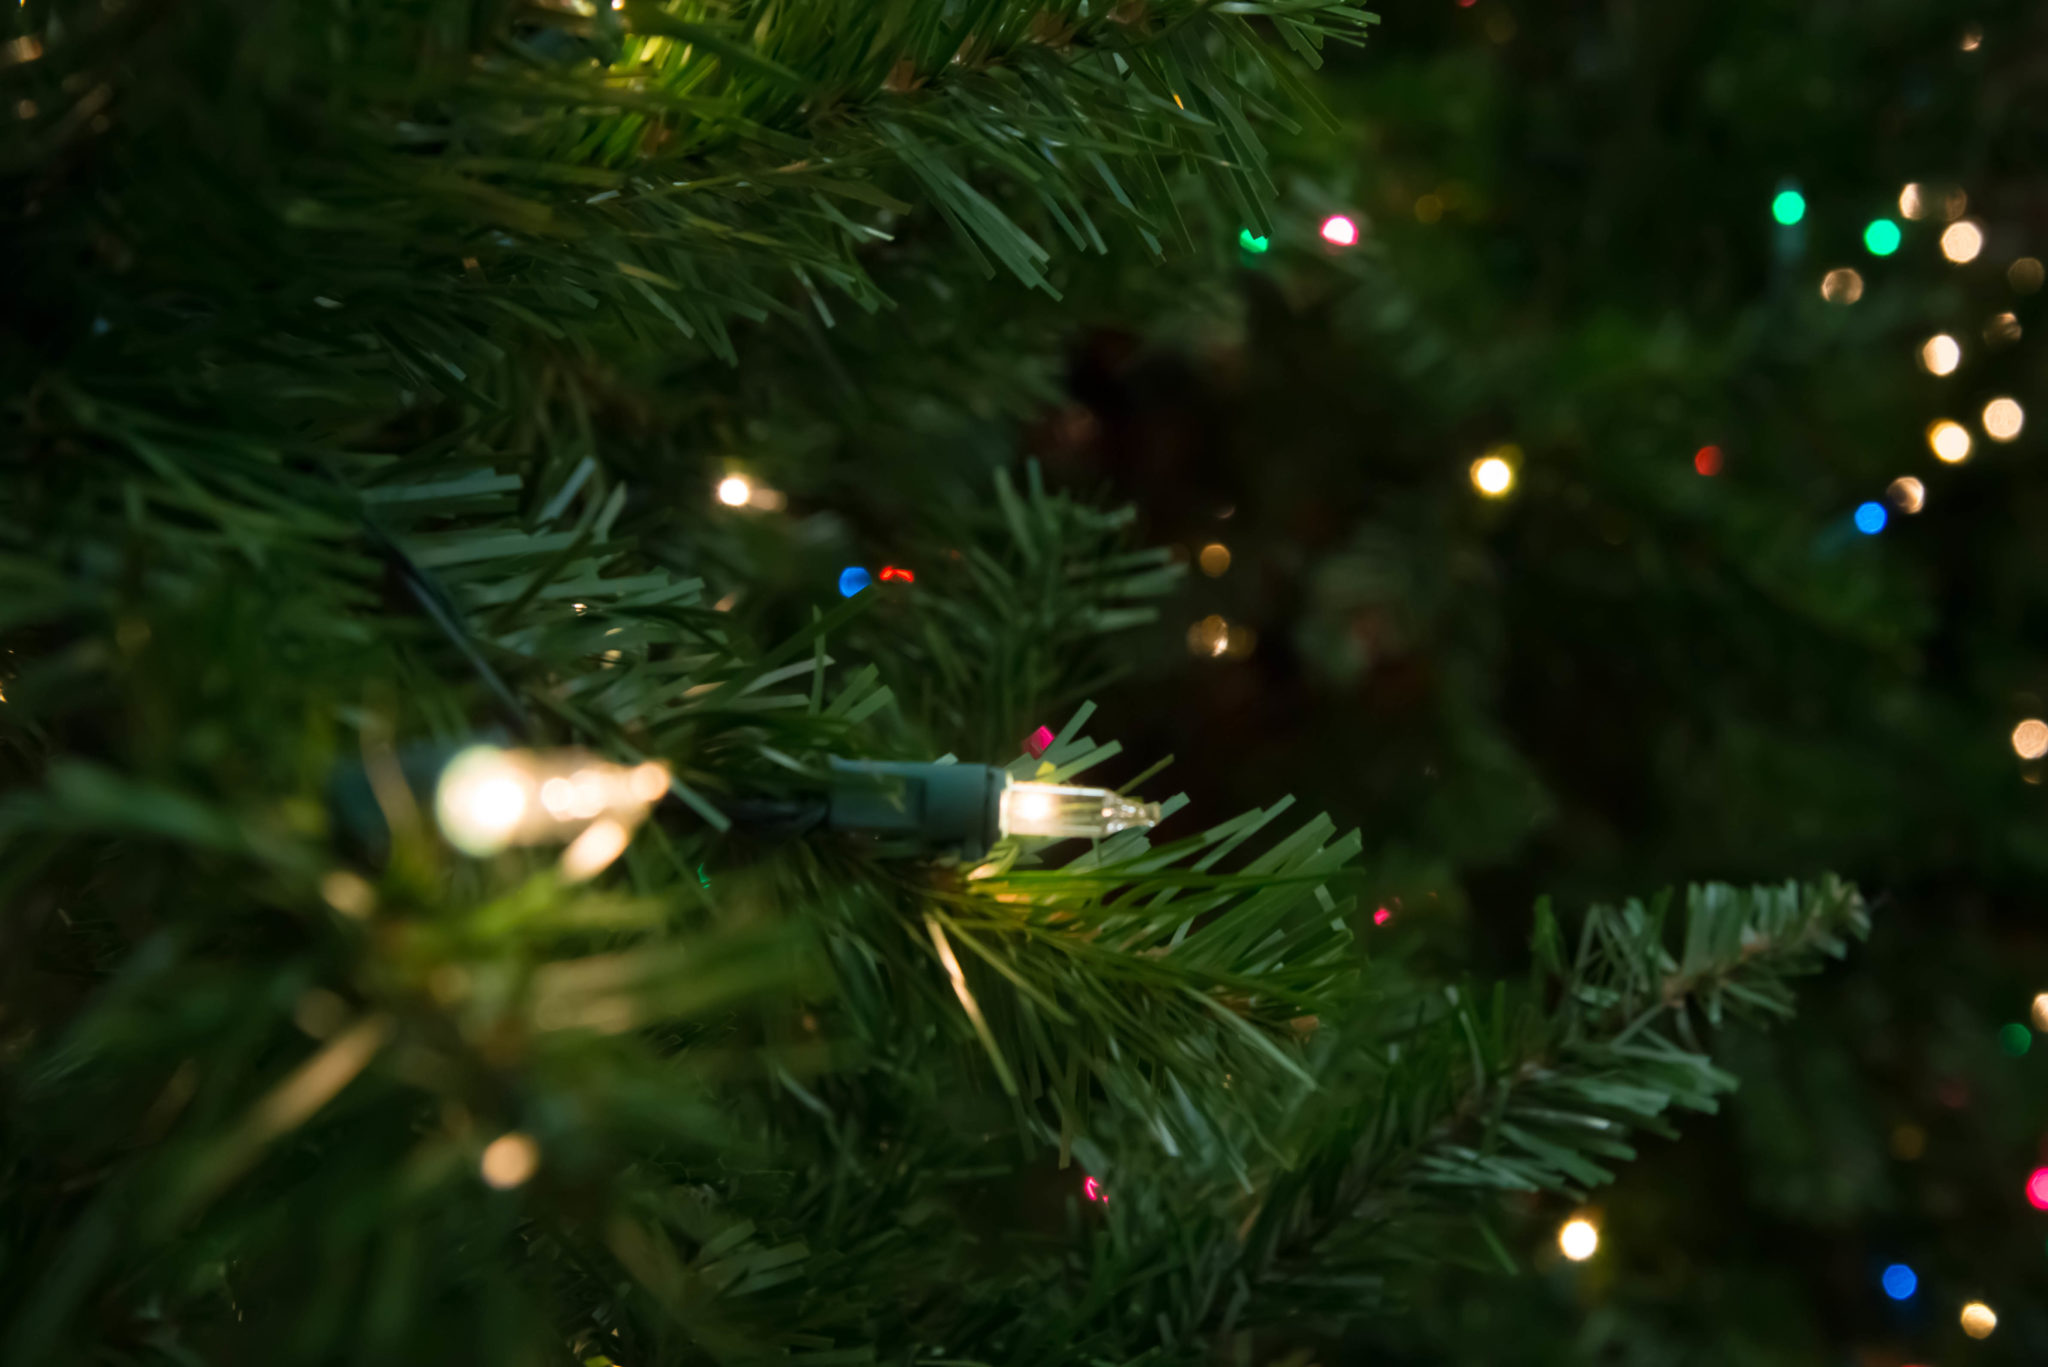 How To String Lights On Artificial Christmas Tree : Artificial Christmas Trees: 5 Tips for Buying the Best The Money Pit